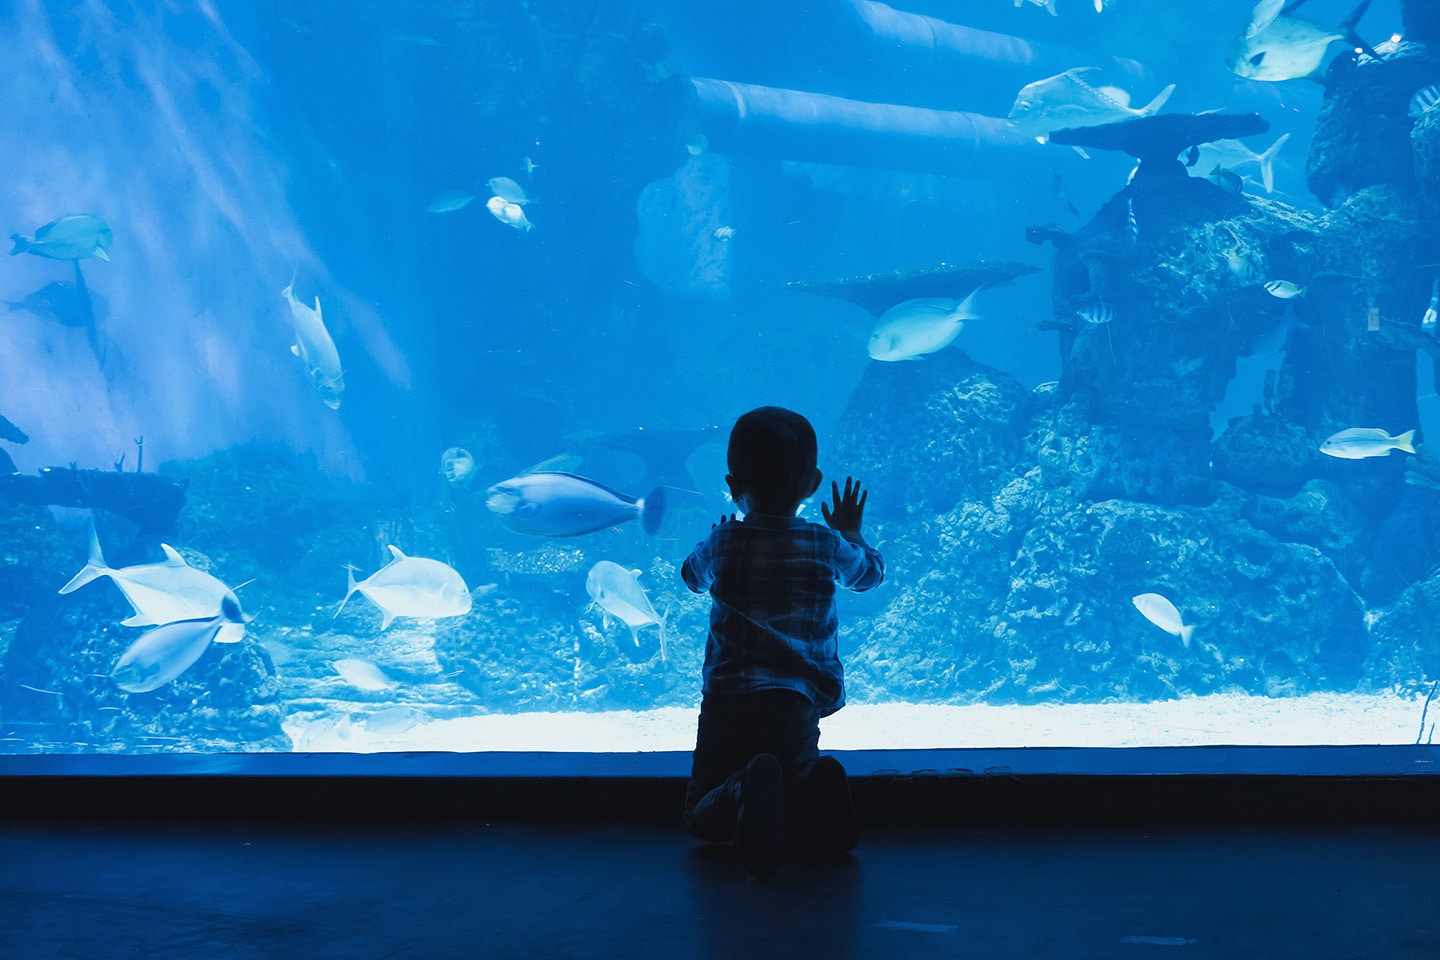 small boy is watching fish in the aquarium